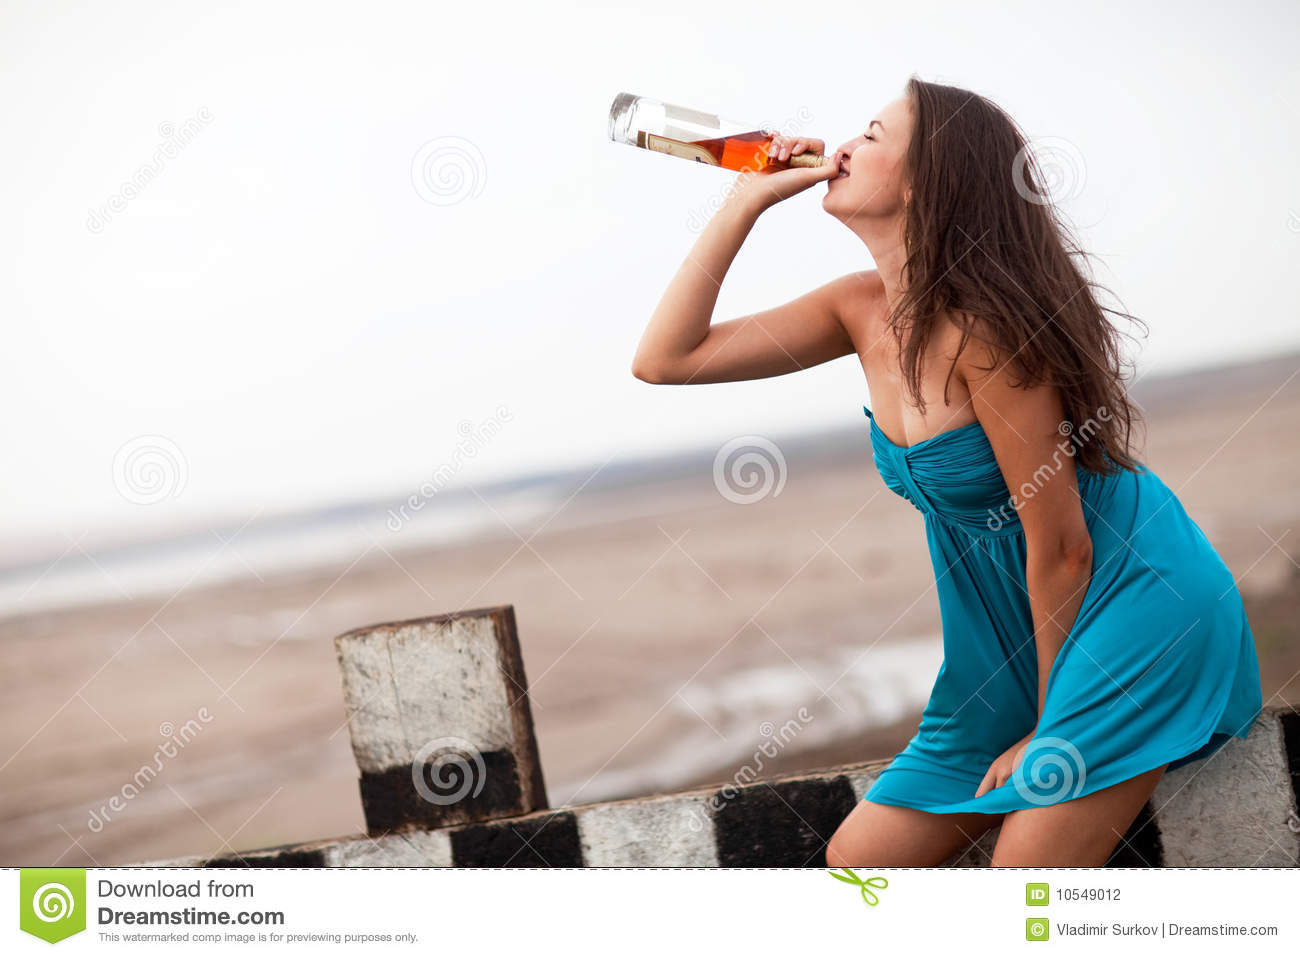 Image result for girls and  alcohol images